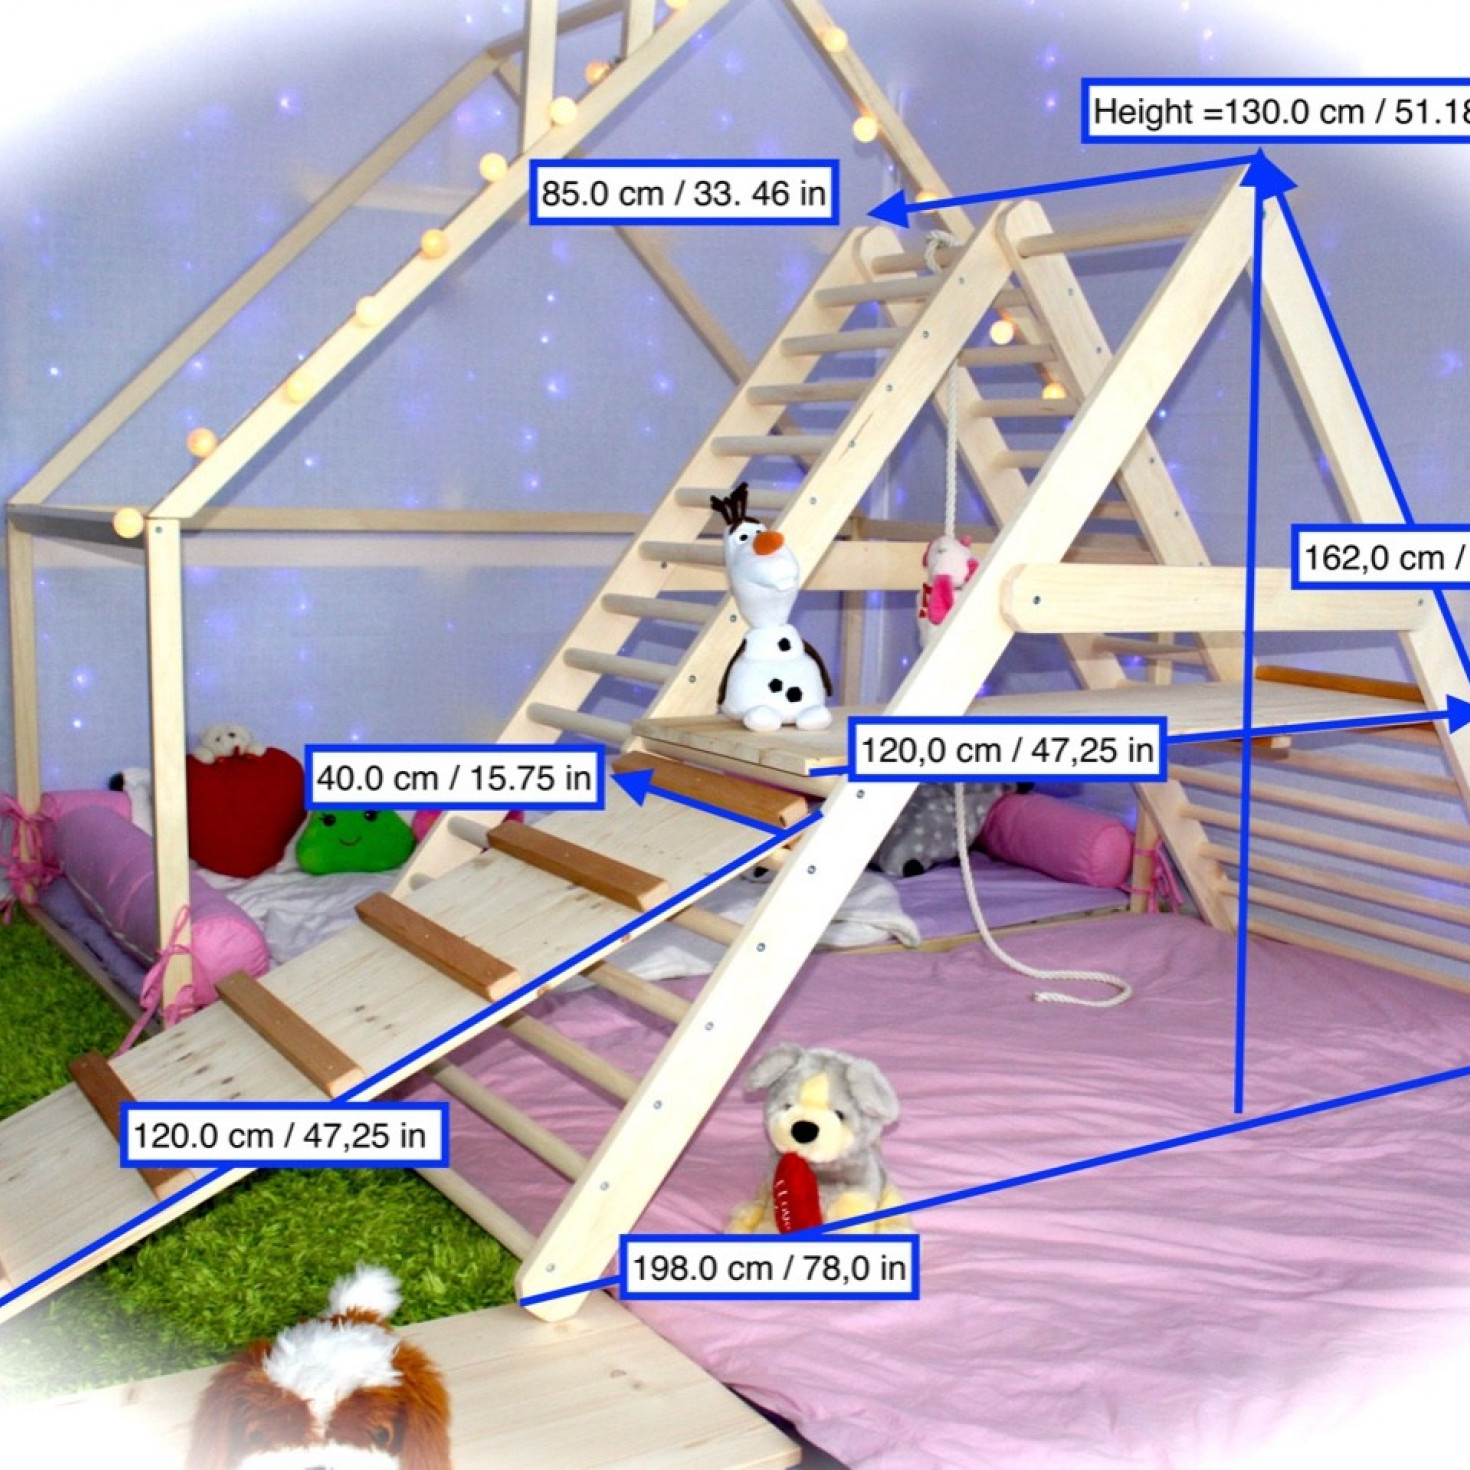 Dimensions of a climbing ladder for toddlers